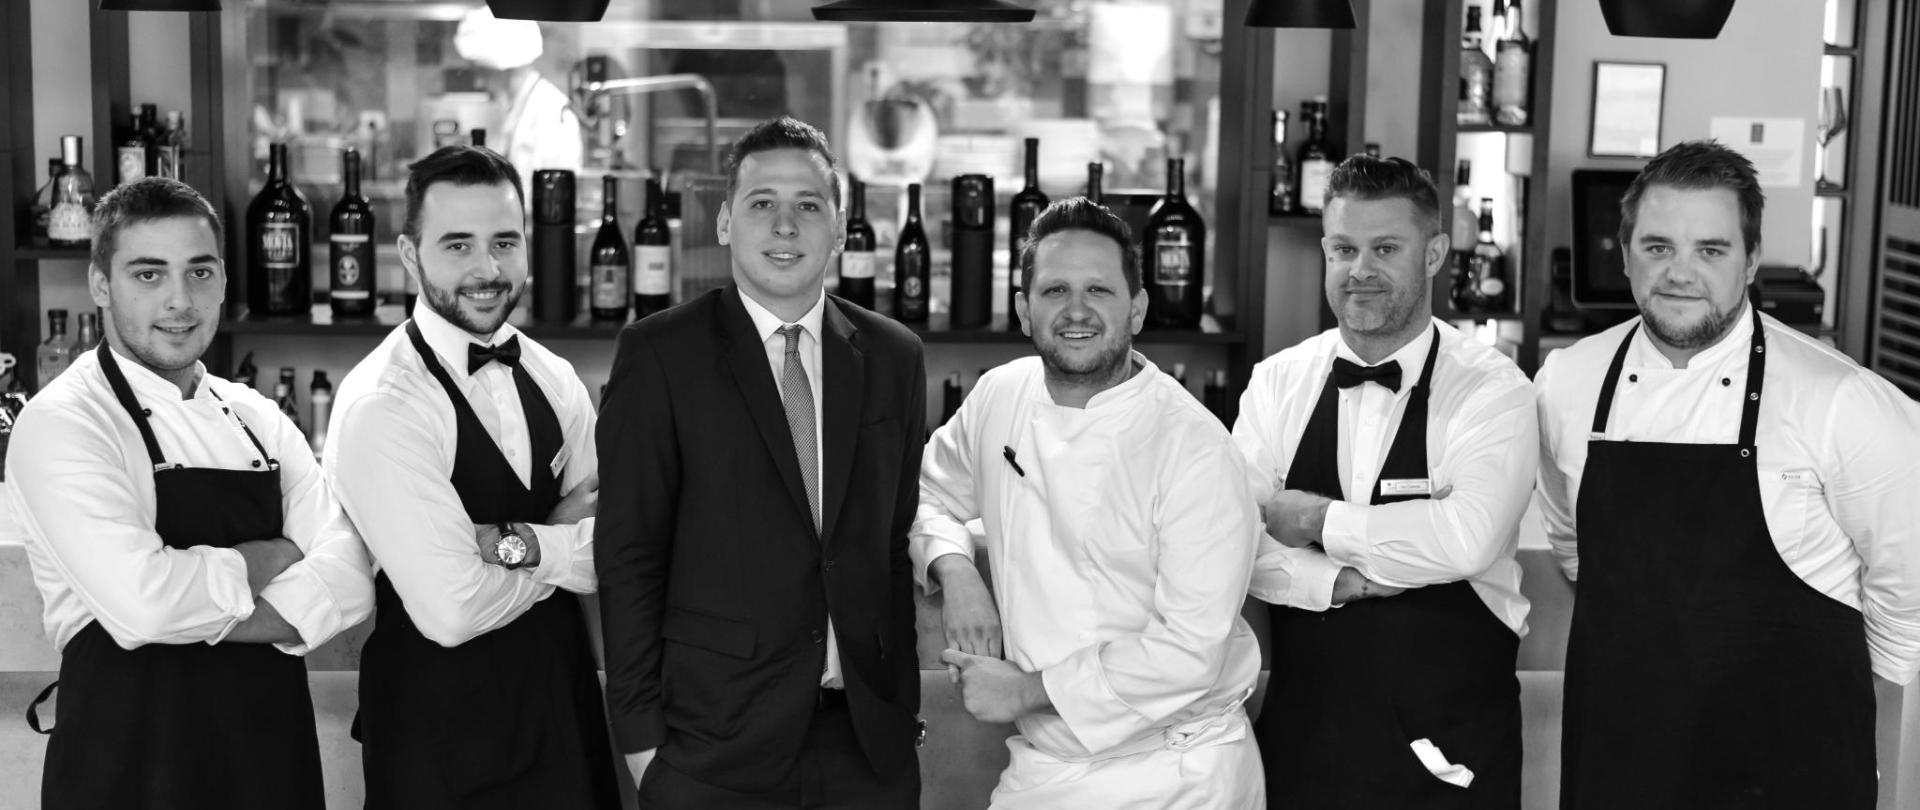 Hotel Slon F & B team_photo by Peter Irman_2.jpg